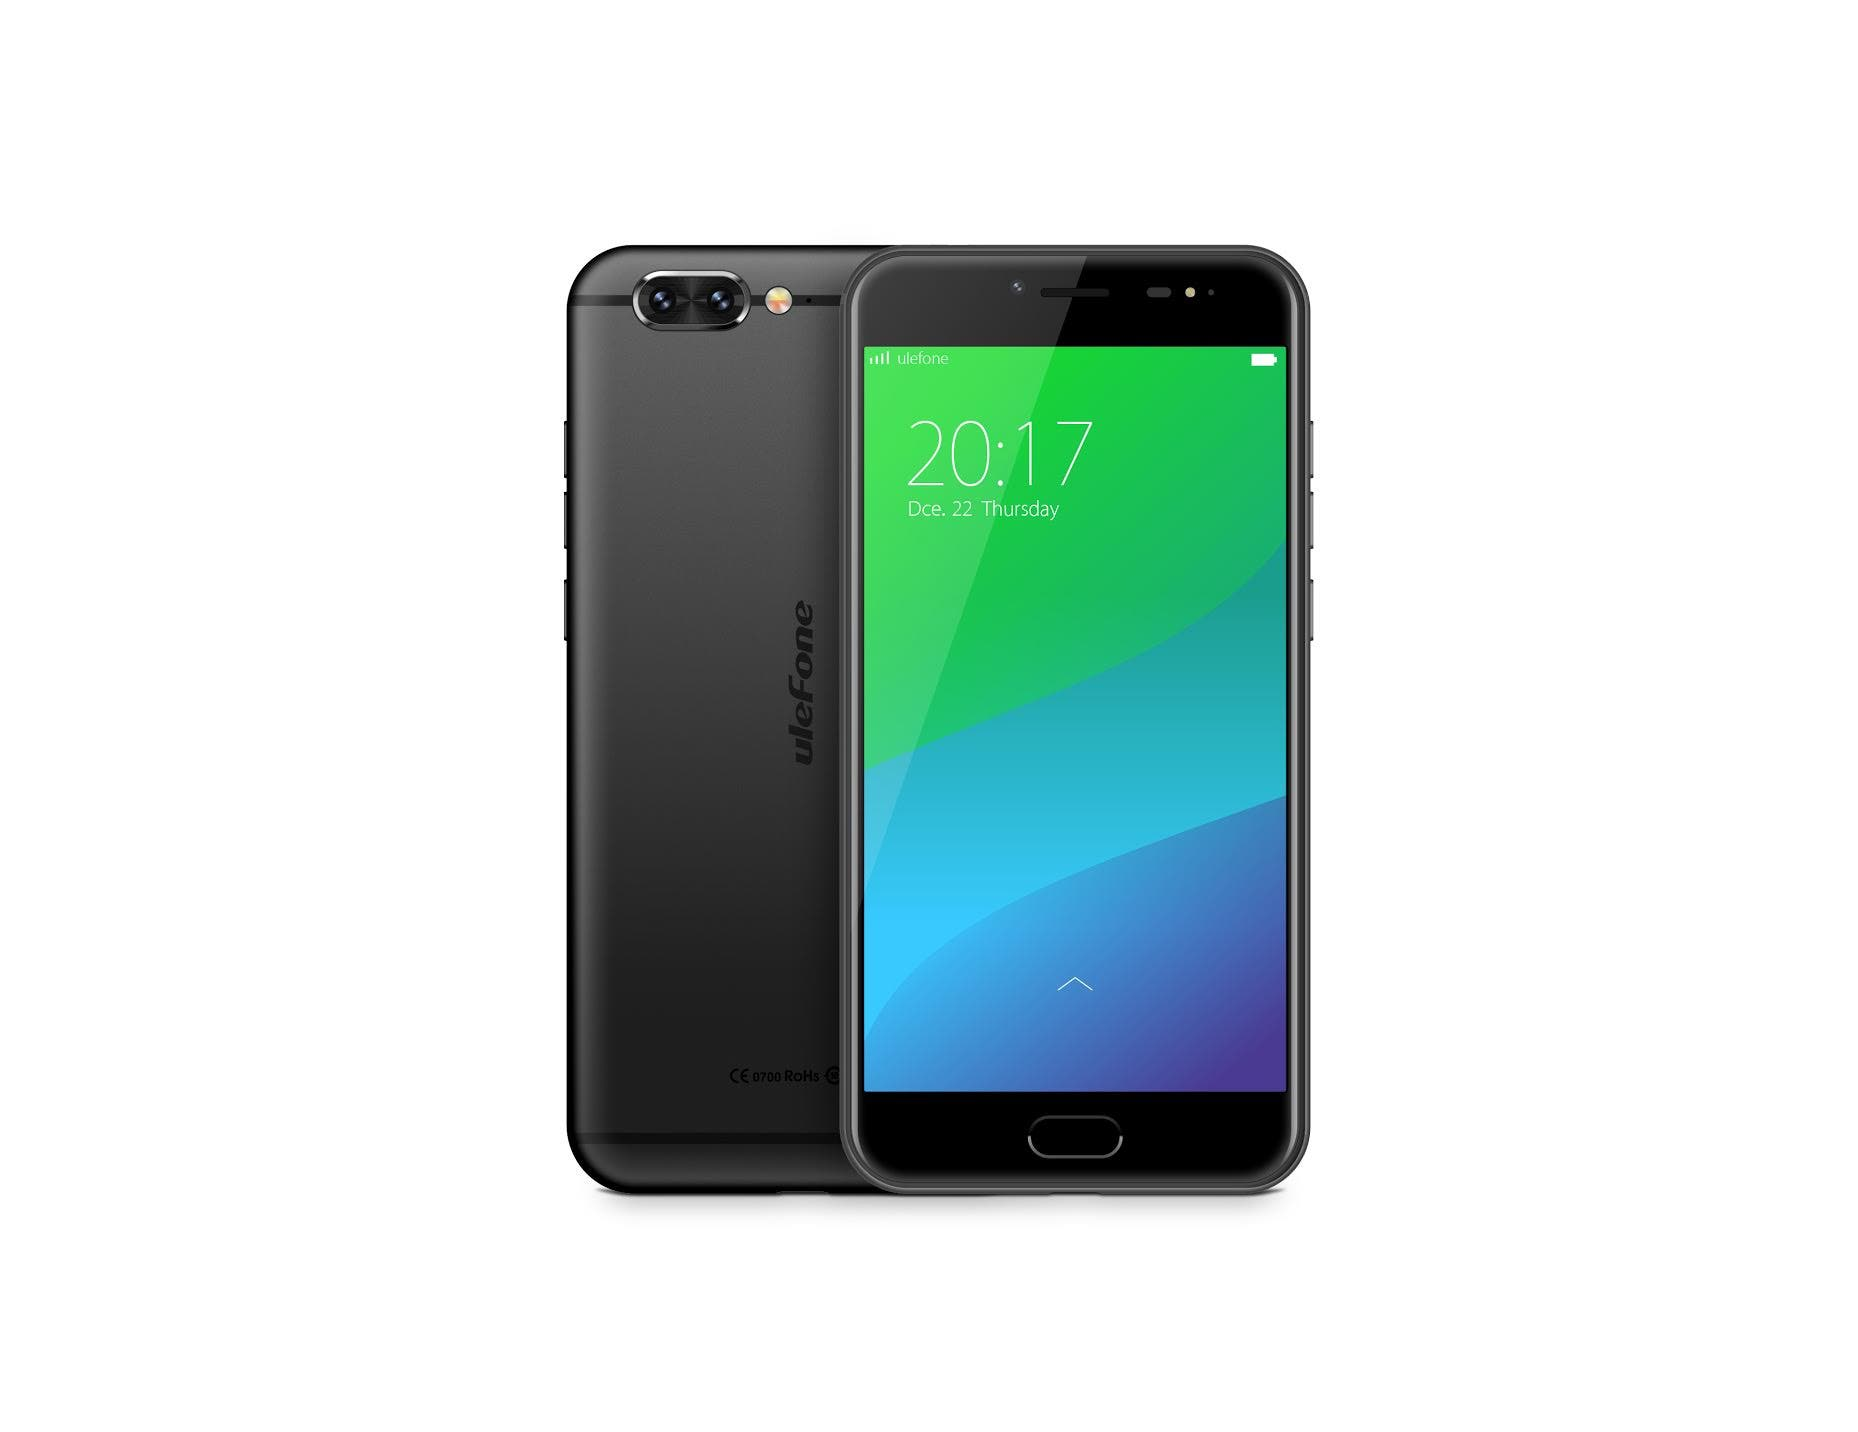 Ulefone Gemini Pro specifications